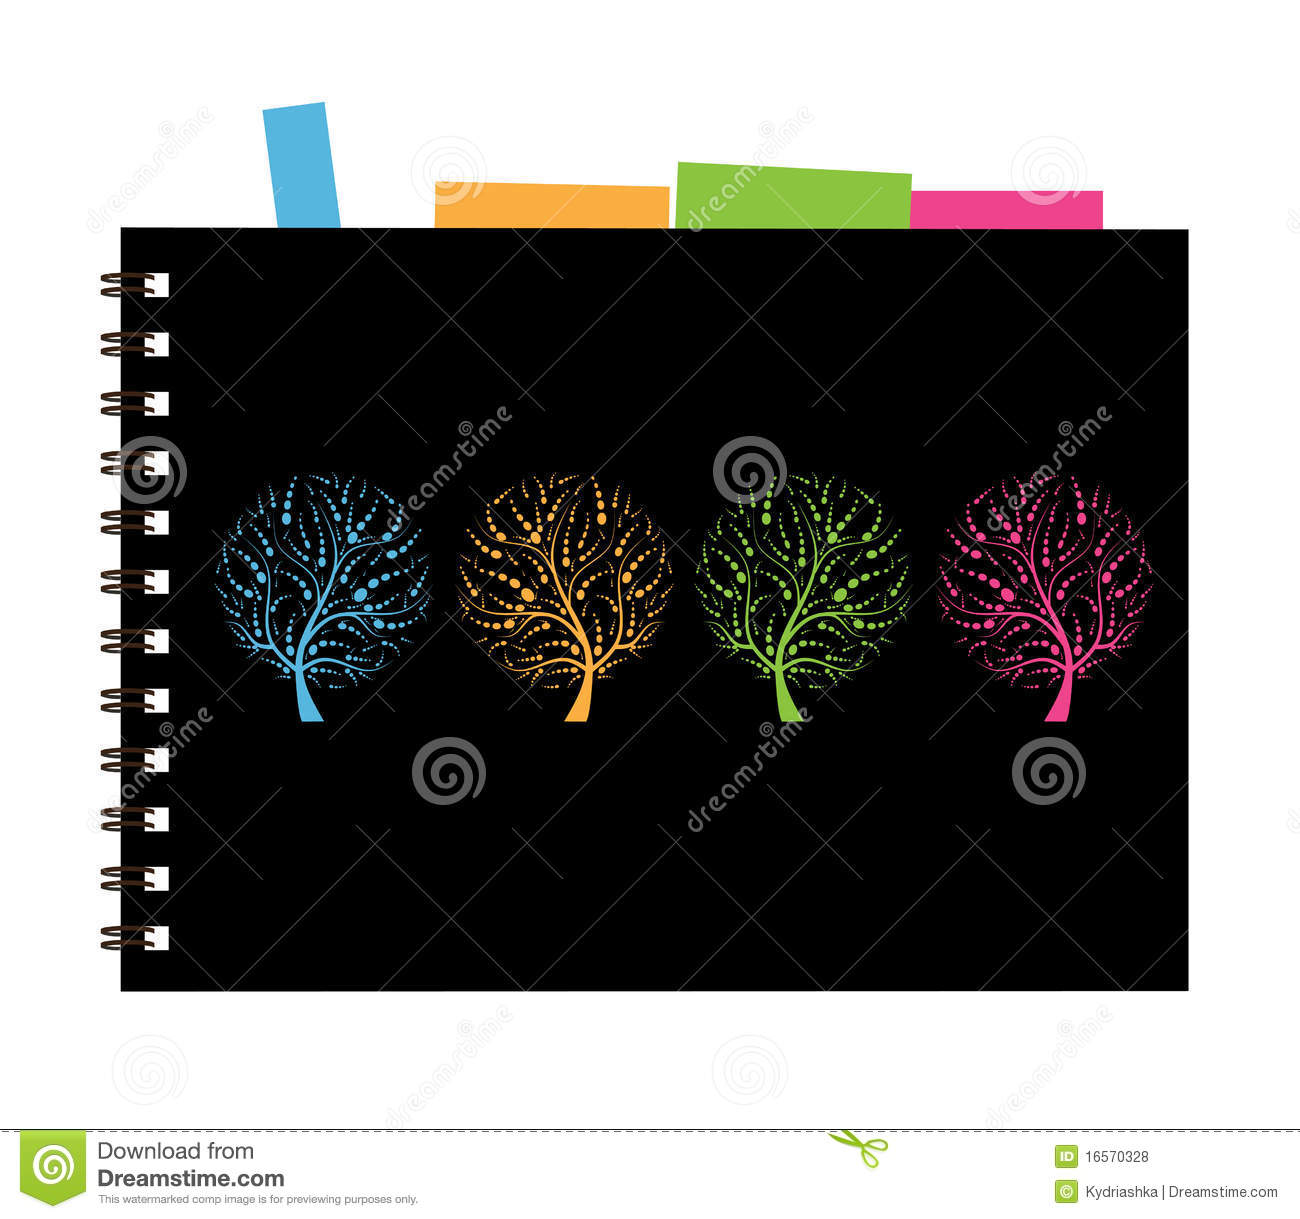 Cover page designs for school projects note book cover page design - Notebook Cover Design Art Tree Royalty Free Stock Photos